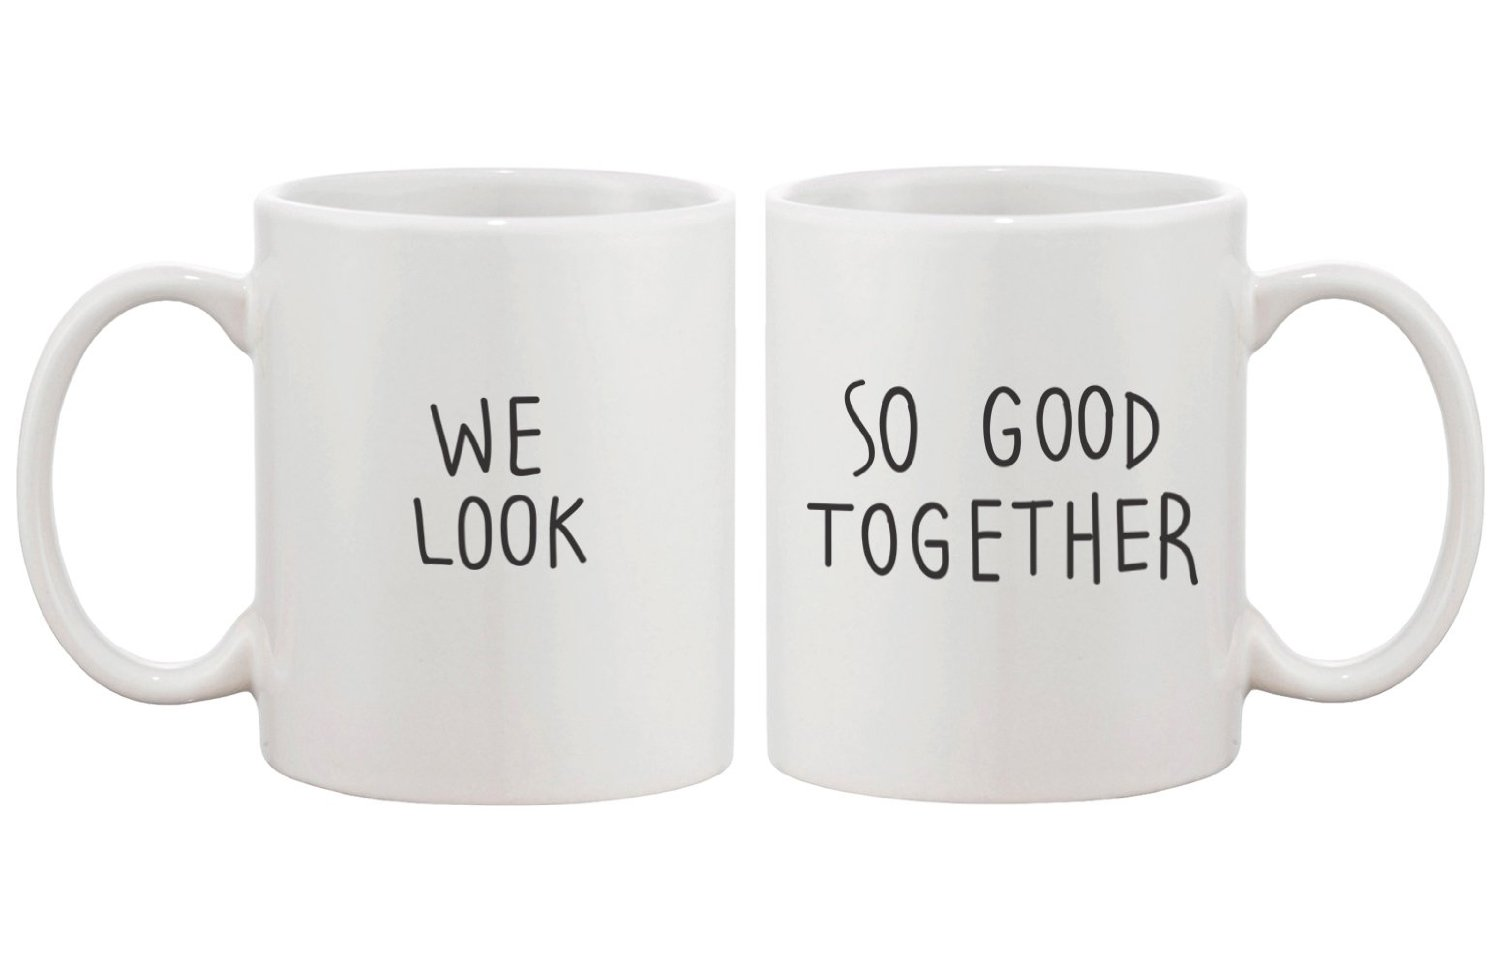 Amazon.com: Look Good Matching Couple Mugs - Perfect Wedding, Engagement, Anniversary, and Valentines Day Gift for Newlyweds: Kitchen & Dining